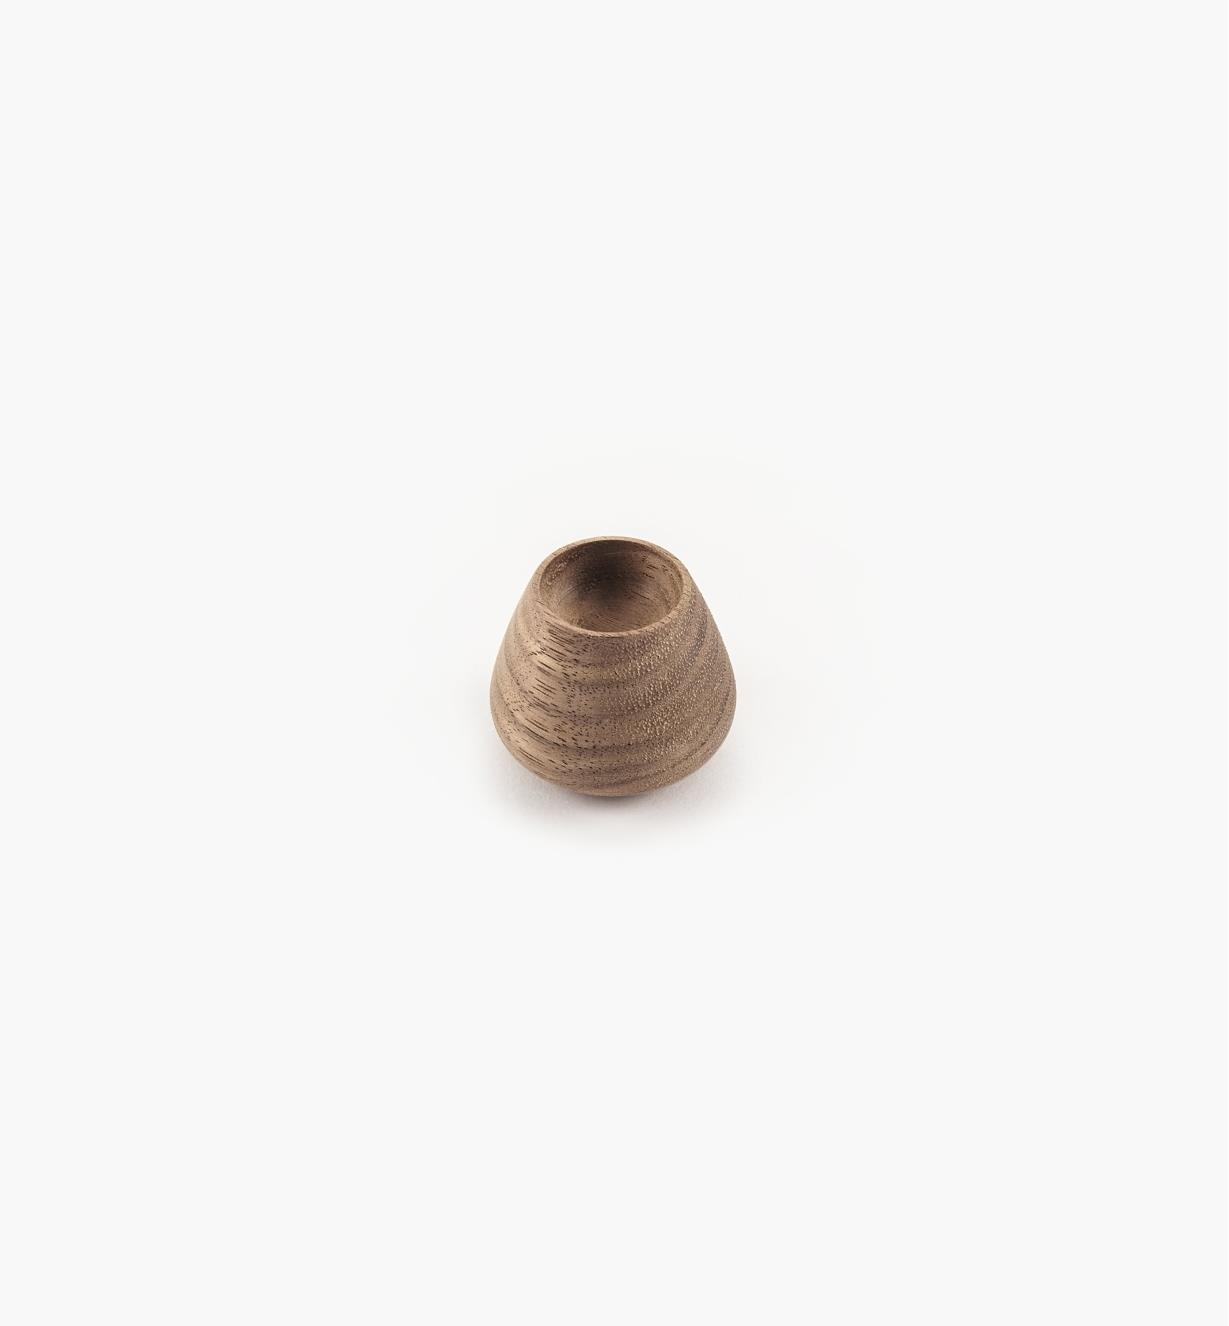 02G2023 - 34mm x 29mm Flowerbud Danish Walnut Knob